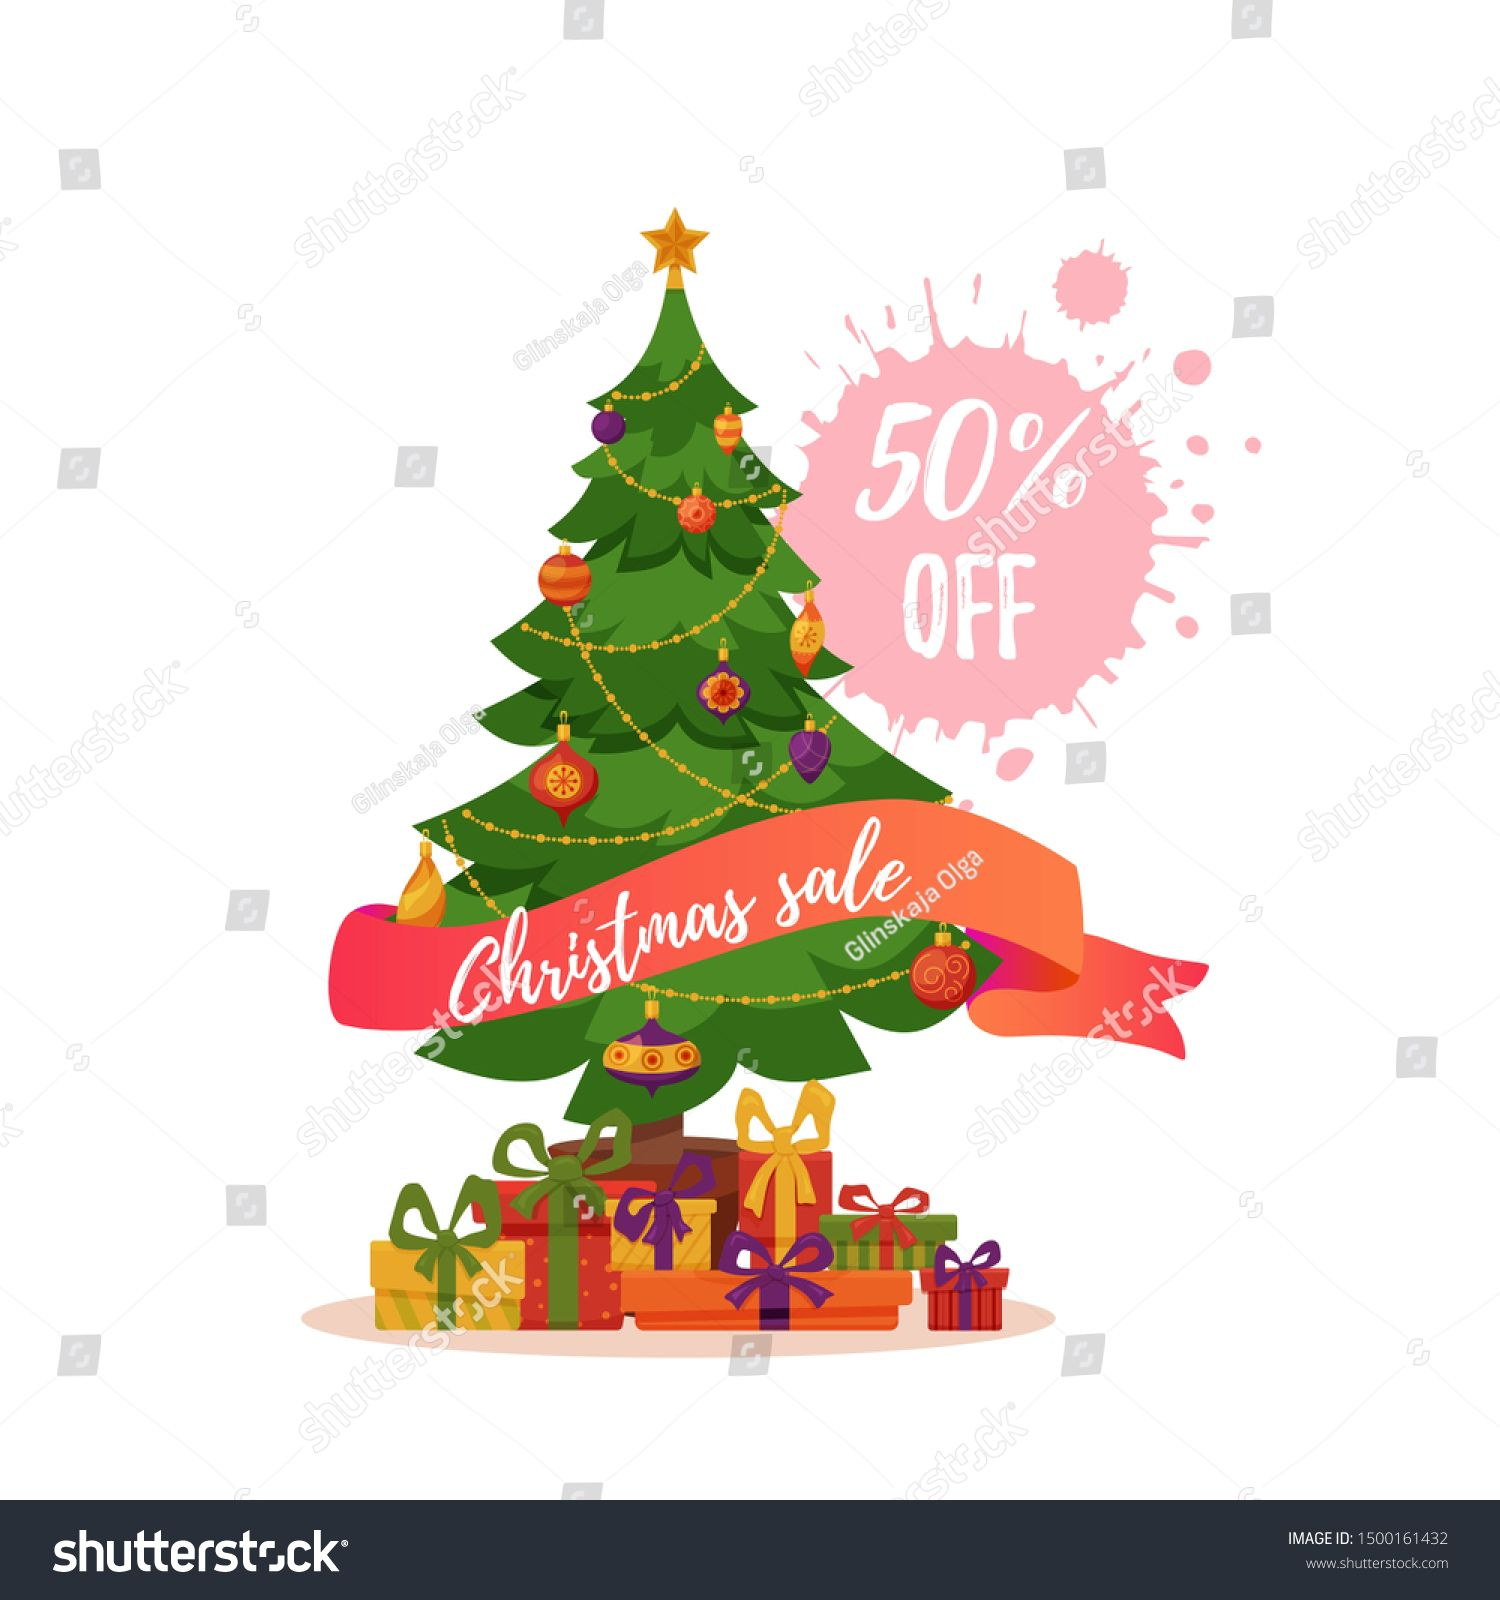 Christmas Tree Decorated Illustration Star Decoration Balls And Gift Boxes Sale Concept In Color Christmas Tree Decorations Tree Decorations Star Decorations